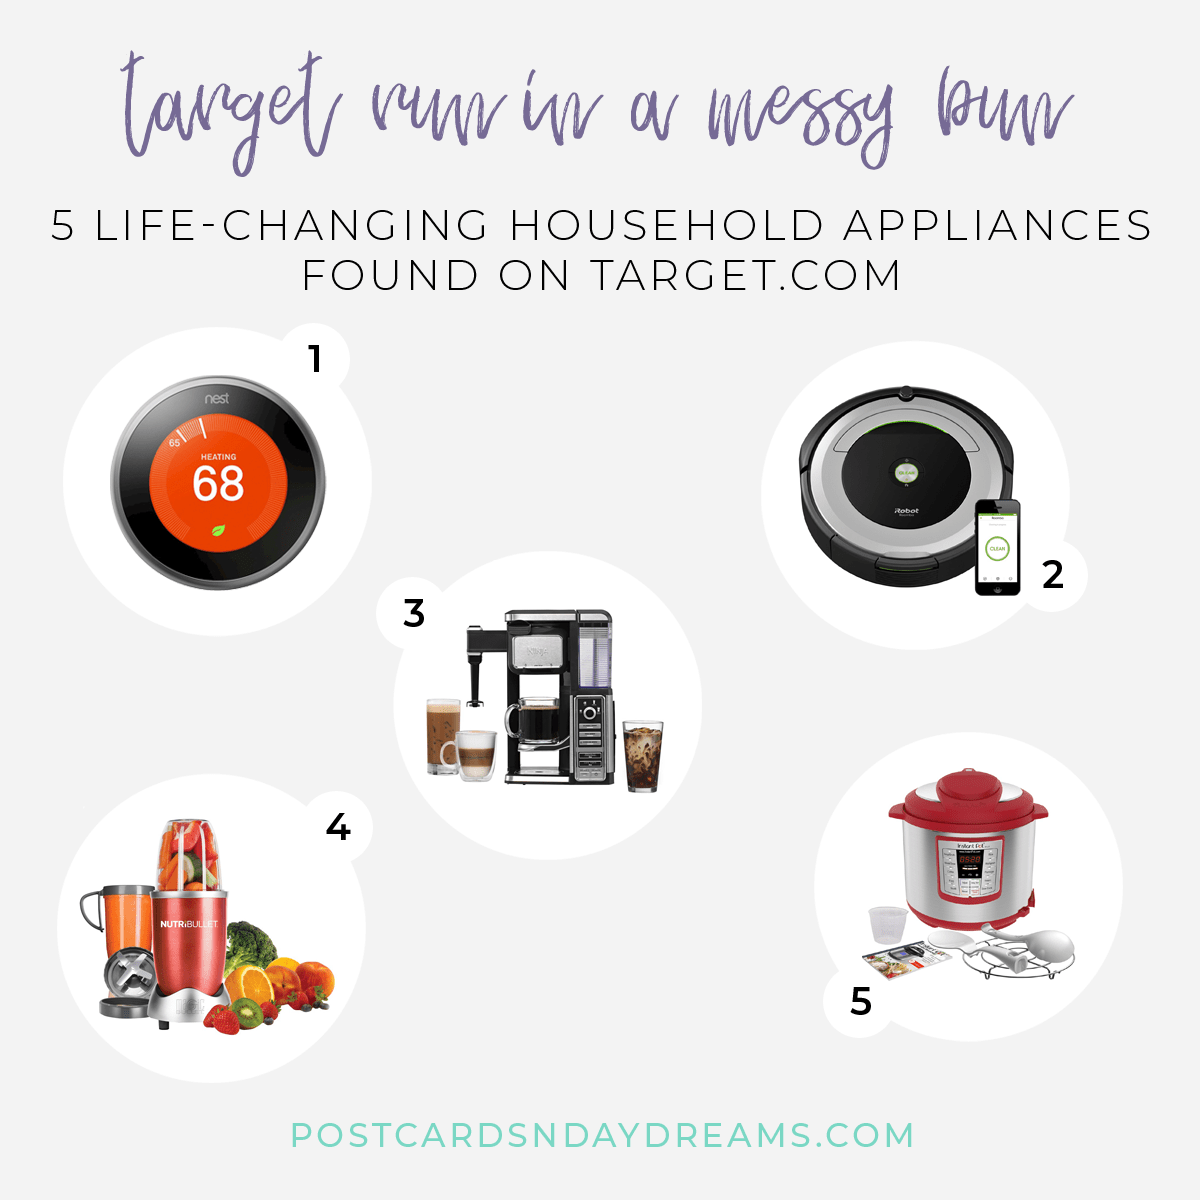 Lovable Househ Appliances From Target Instant Pot Archives Postcards Daydreams Target Instant Pot Coupon Target Instant Pot Duo nice food Target Instant Pot